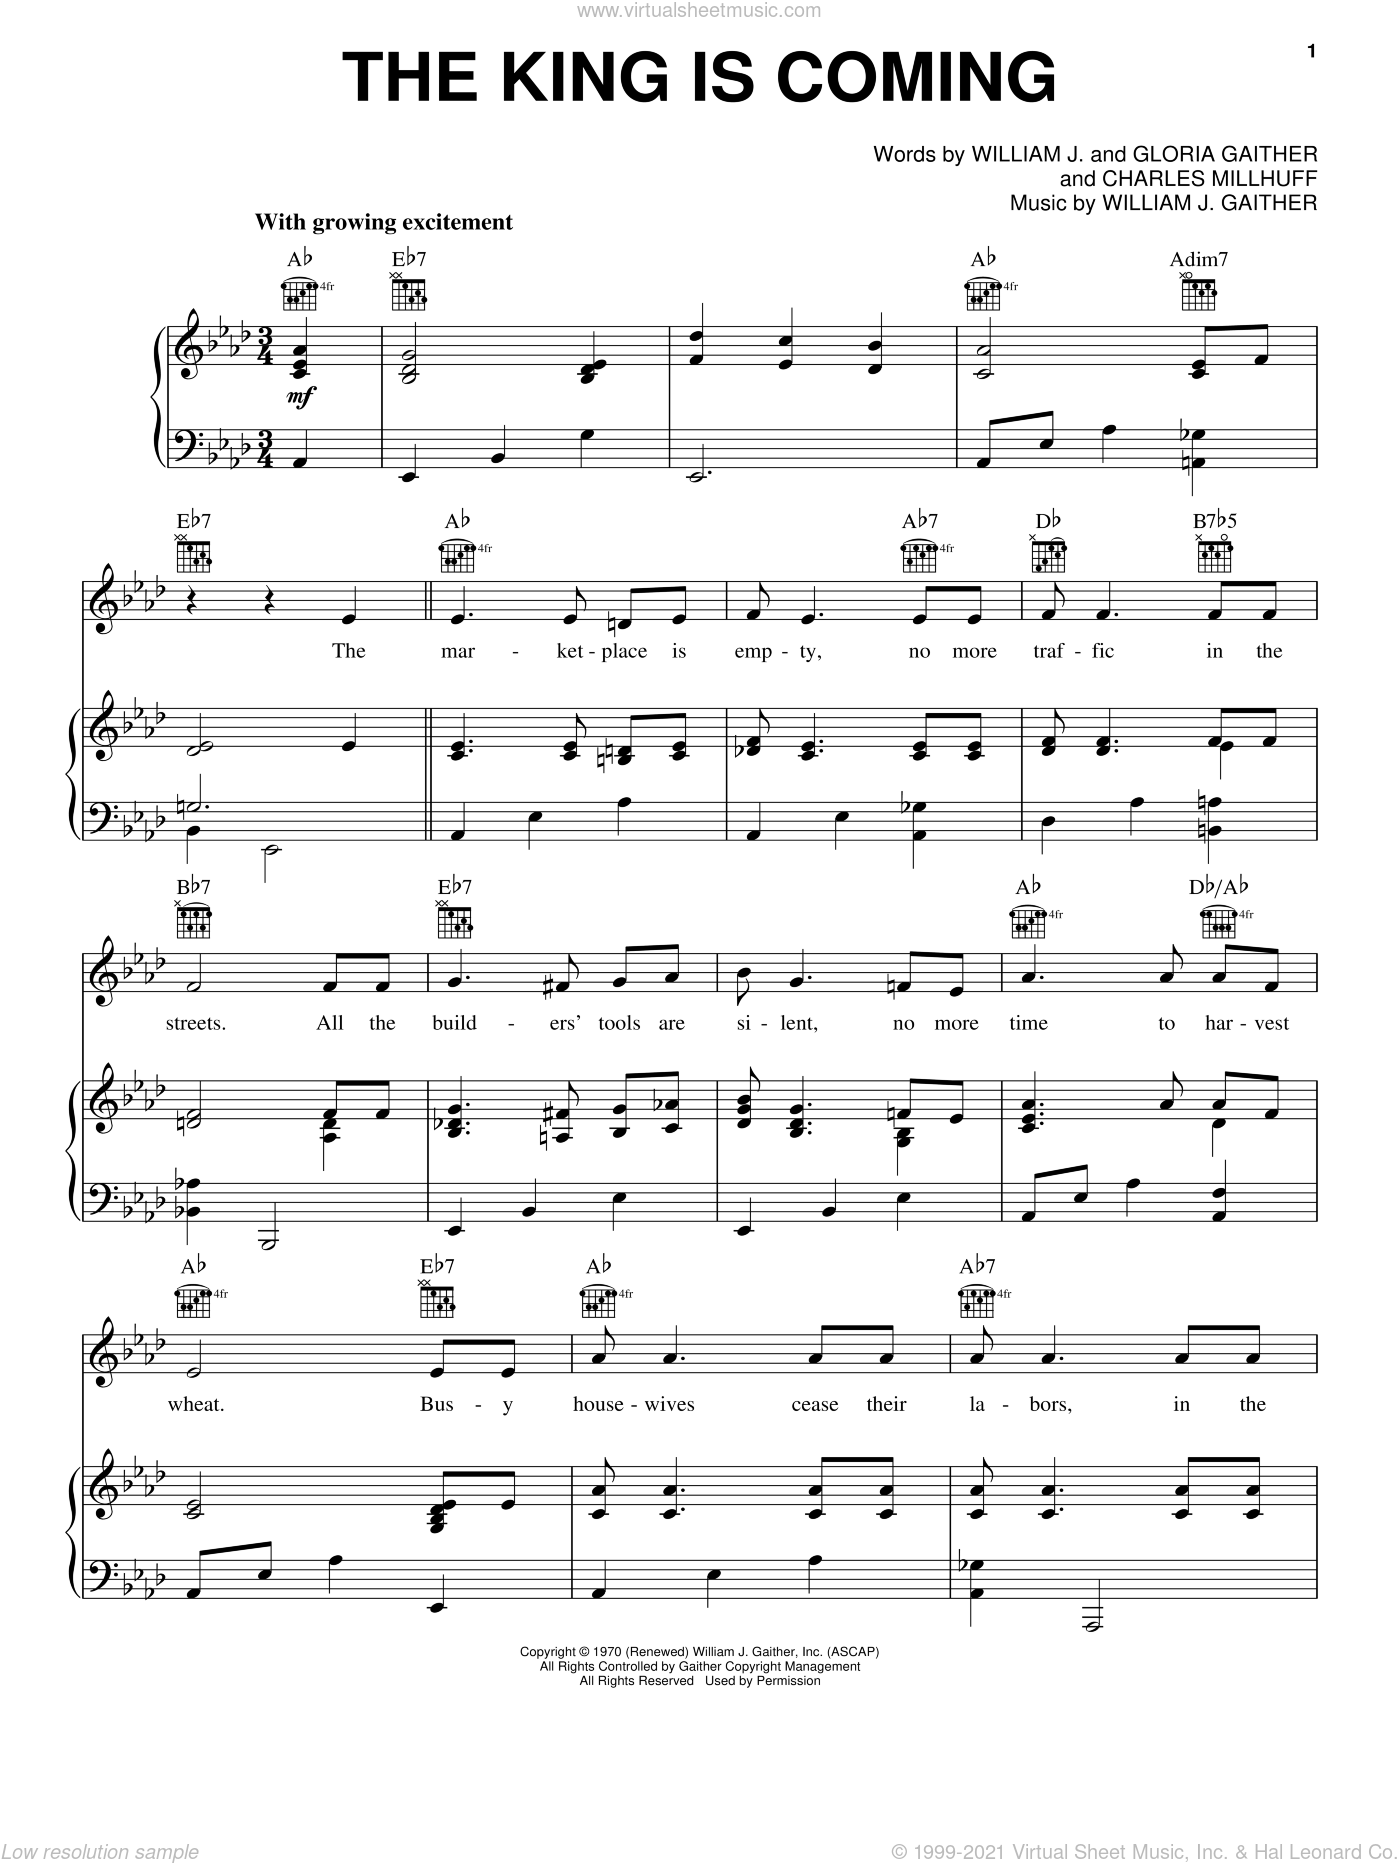 The King Is Coming sheet music for voice, piano or guitar by Gloria Gaither, Charles Millhuff and William J. Gaither, intermediate skill level